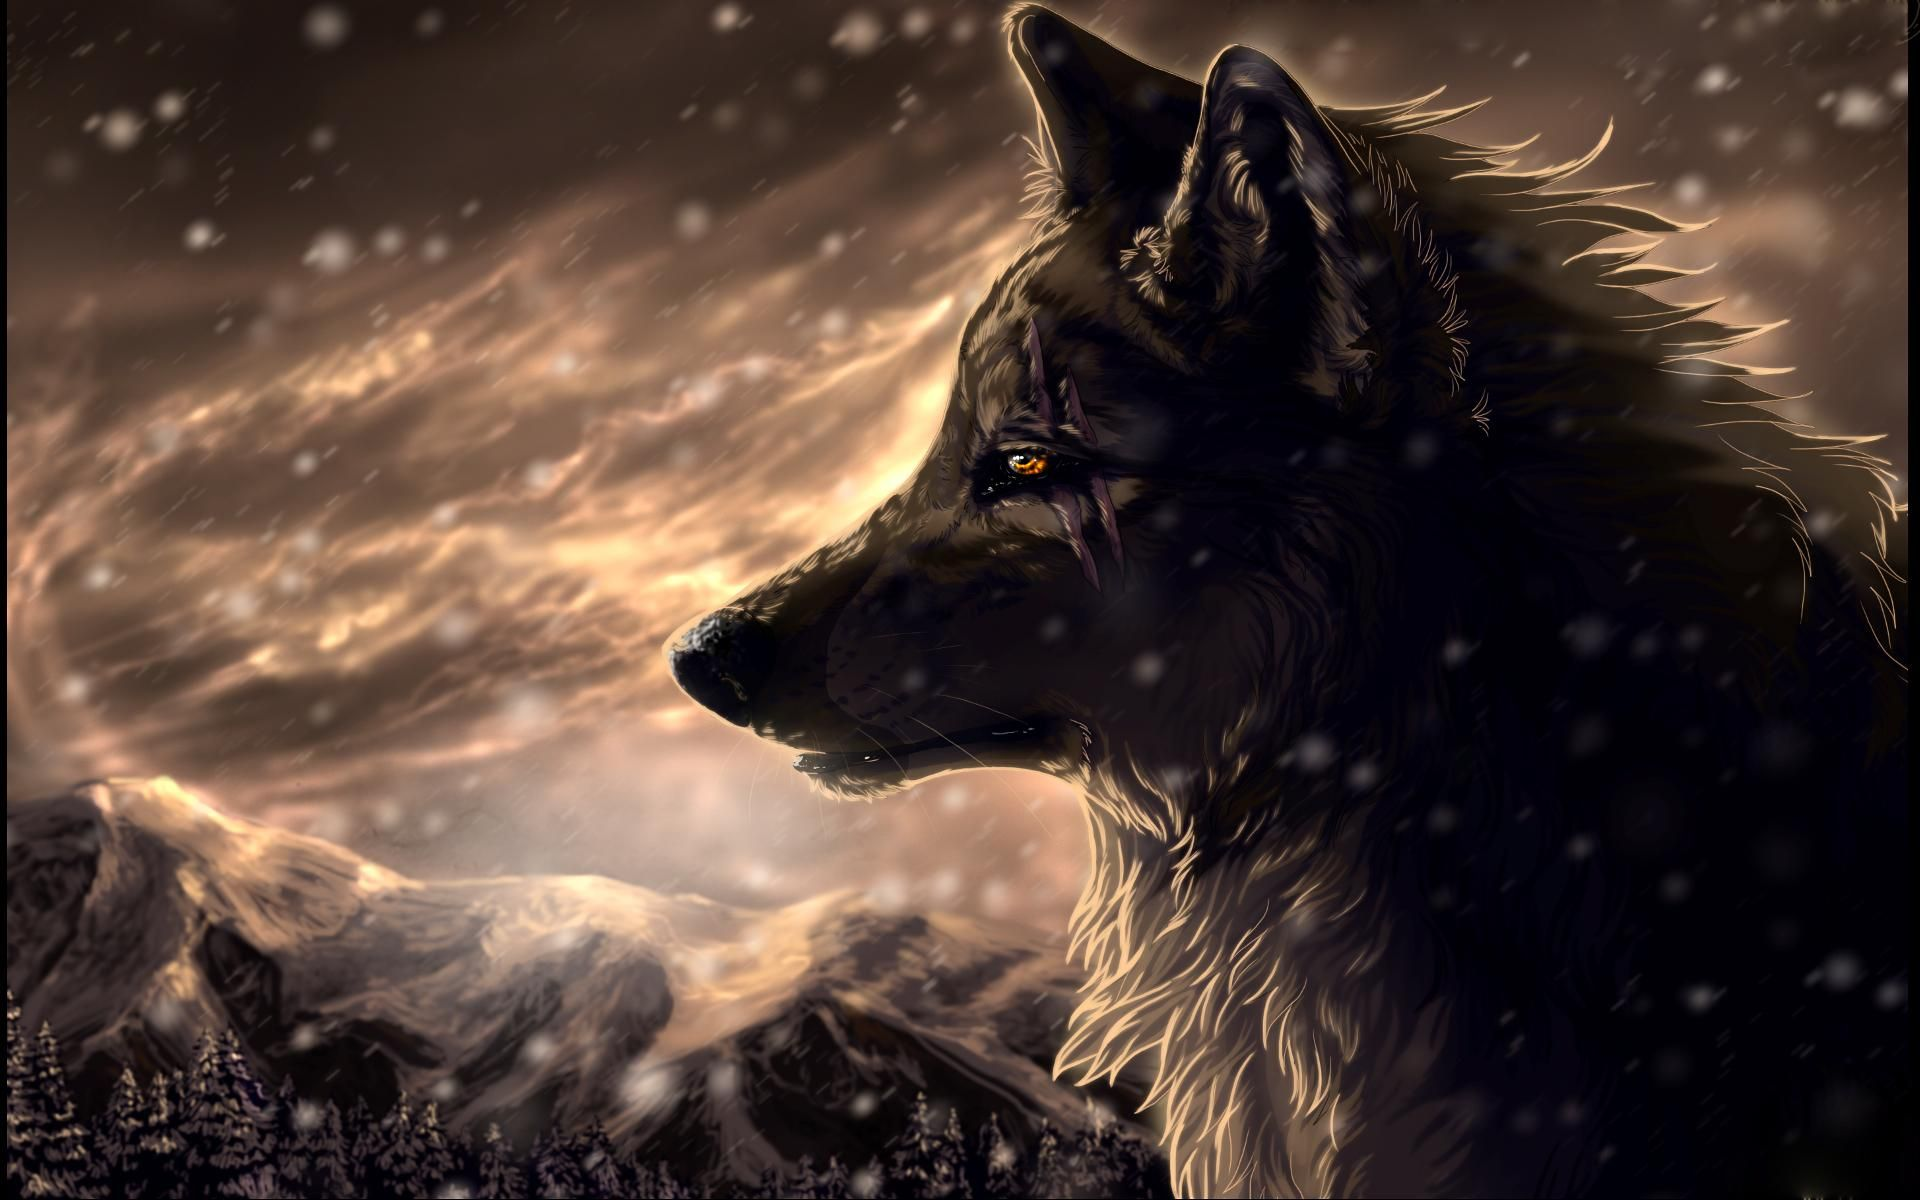 Pin By Scheff On The Wild Wolf Wolf Wallpaper Fantasy Wolf Wolf Images